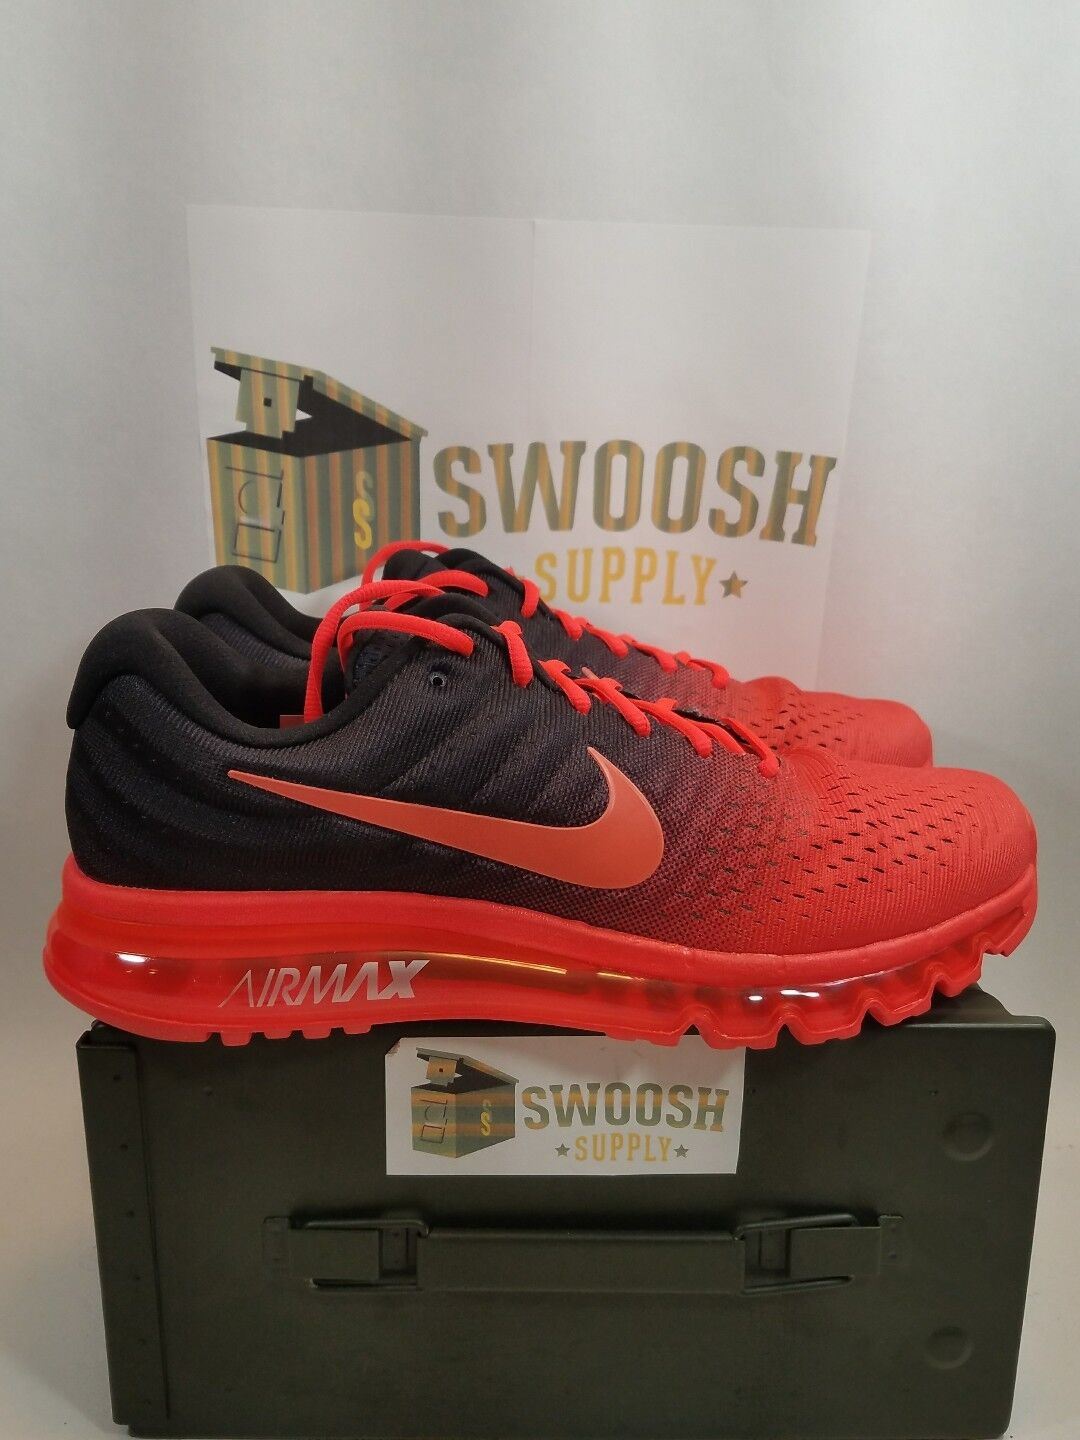 Nike Air Max 2017 Bright Crimson 849559-600 Size 11.5 Retail  190